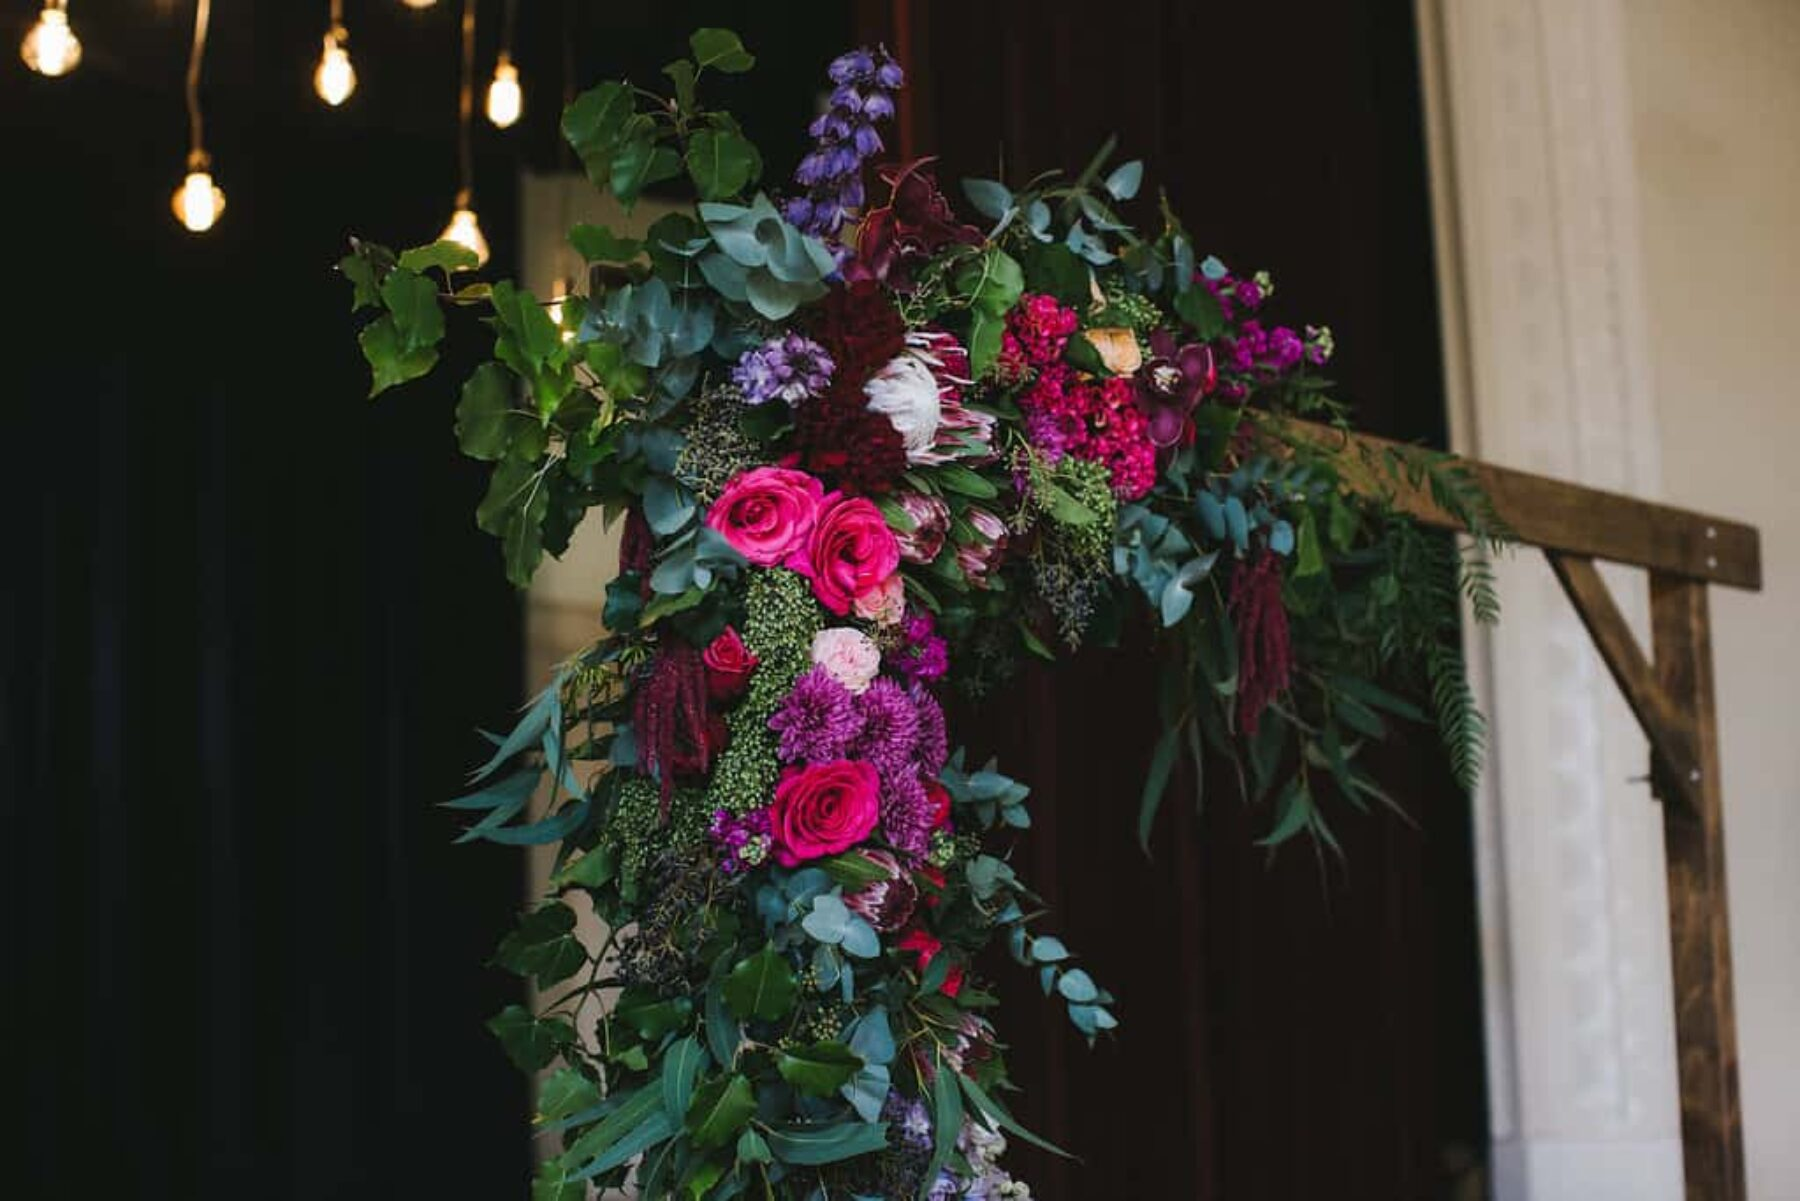 jewel-toned floral arbour